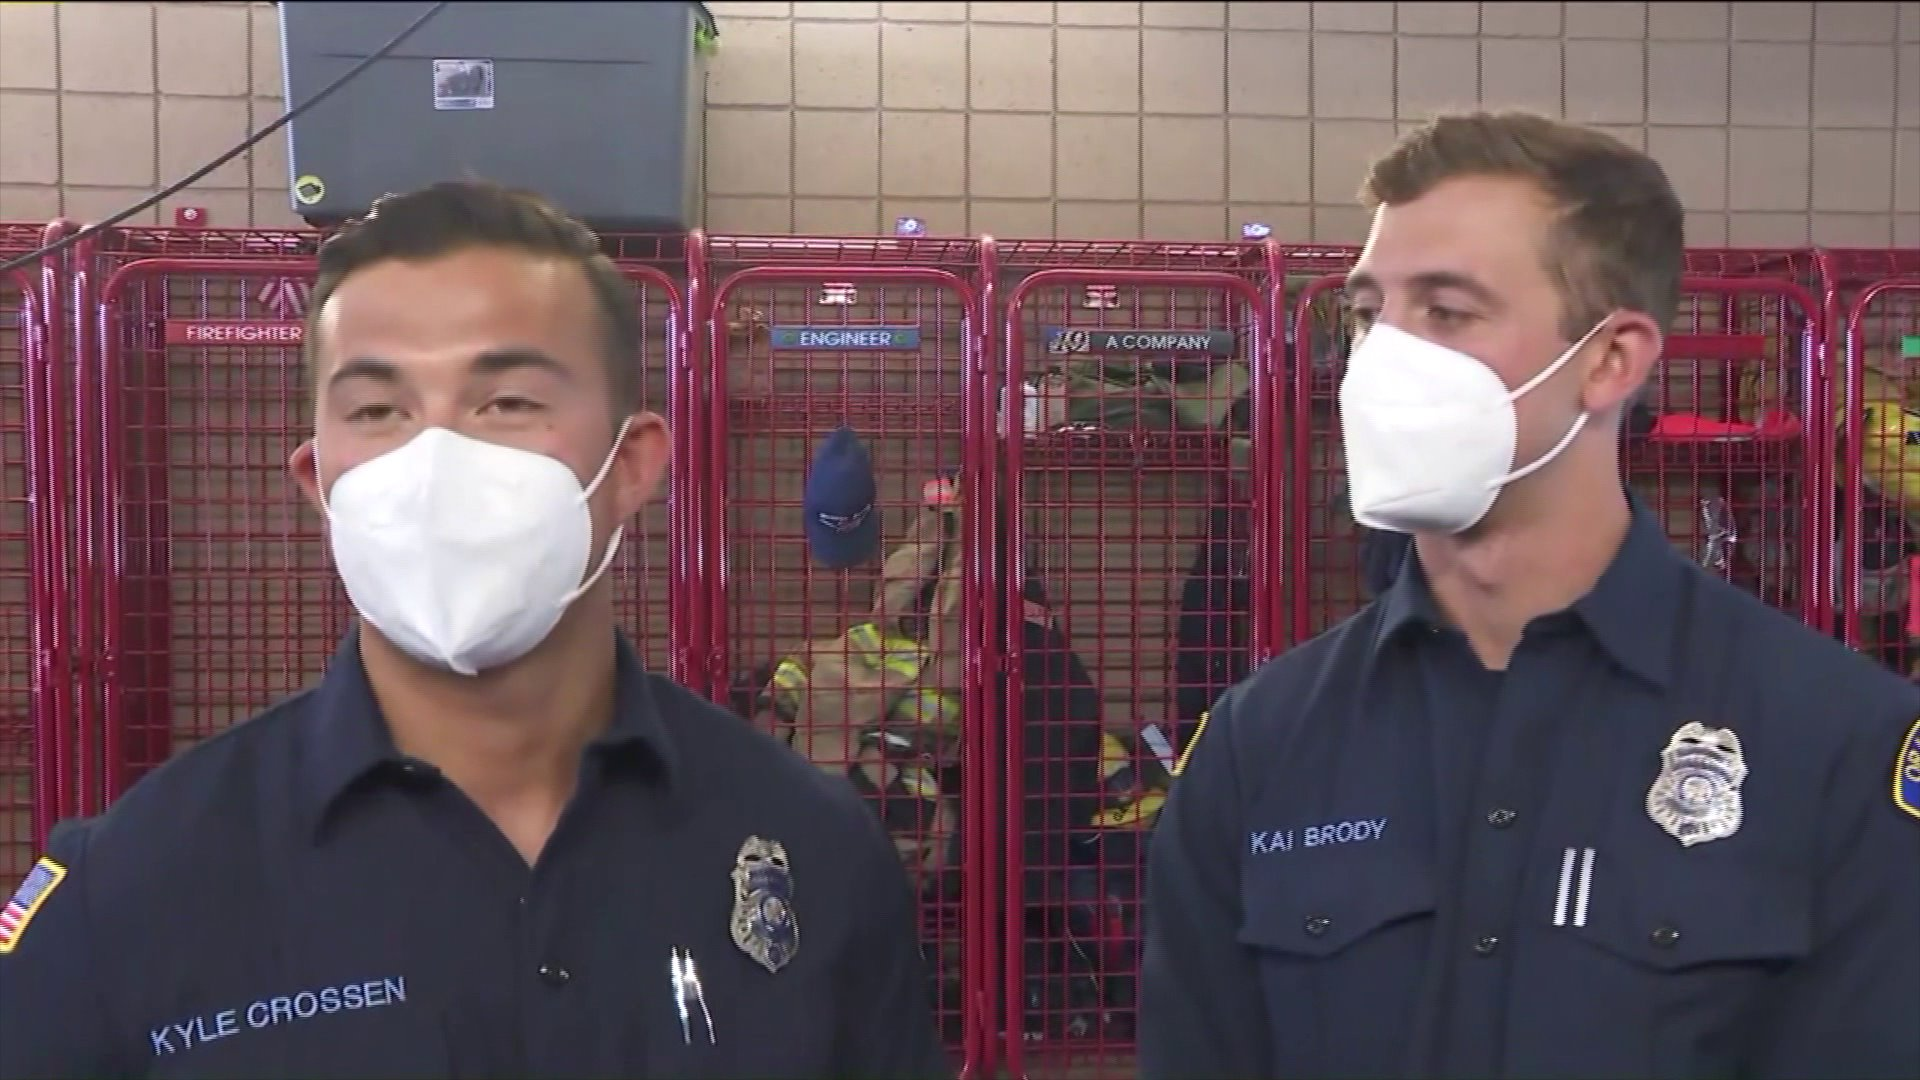 Two firefighters helped deliver a baby on July 3, 2020. (KTLA)